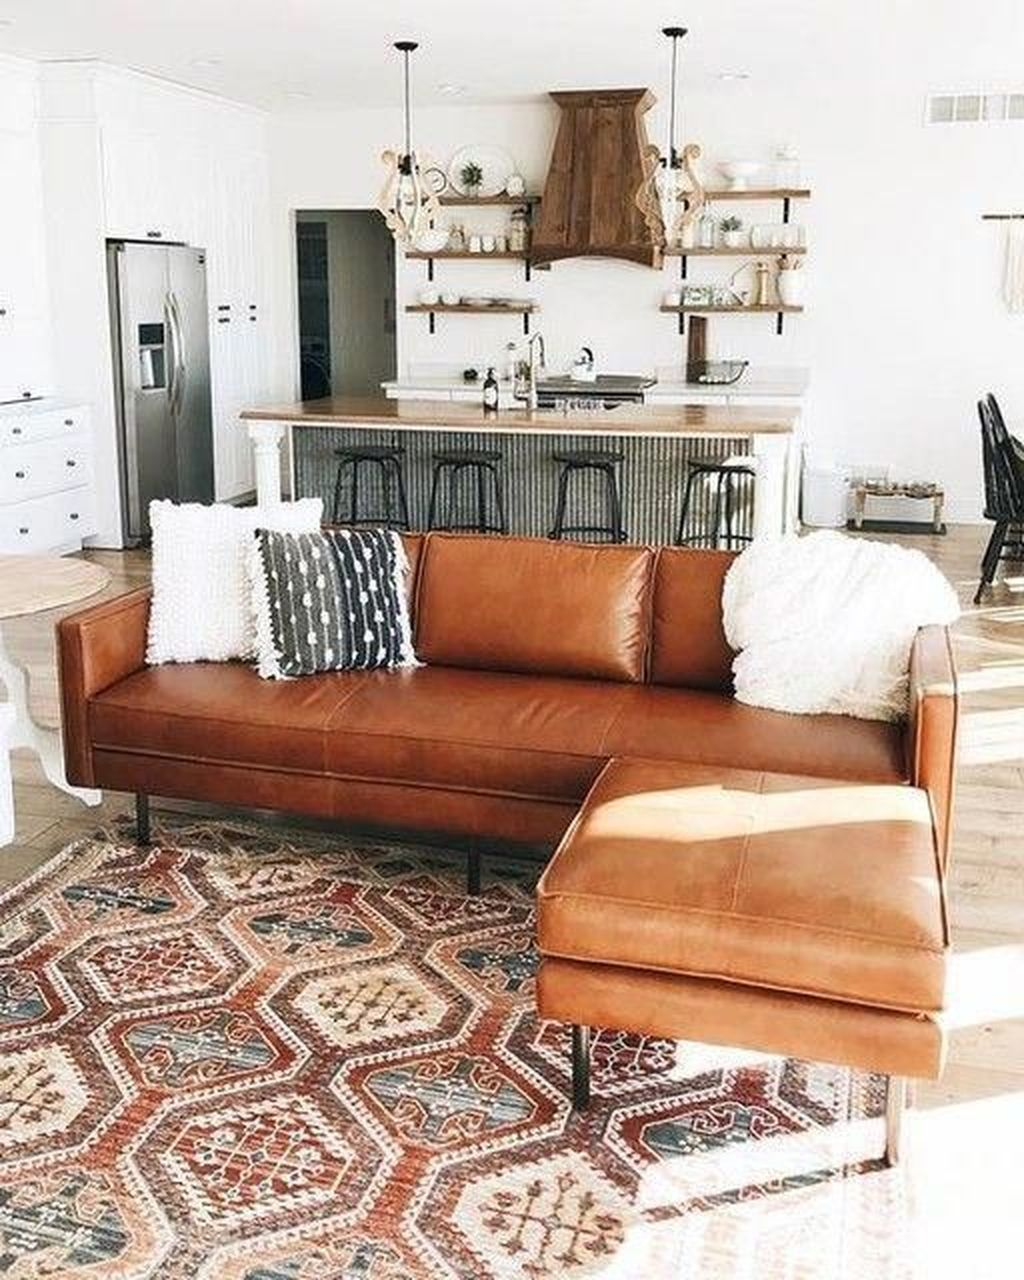 31 Admirable Modern Living Room Design Ideas You Should Copy In 2020 Couches Living Room Brown Living Room Home Living Room